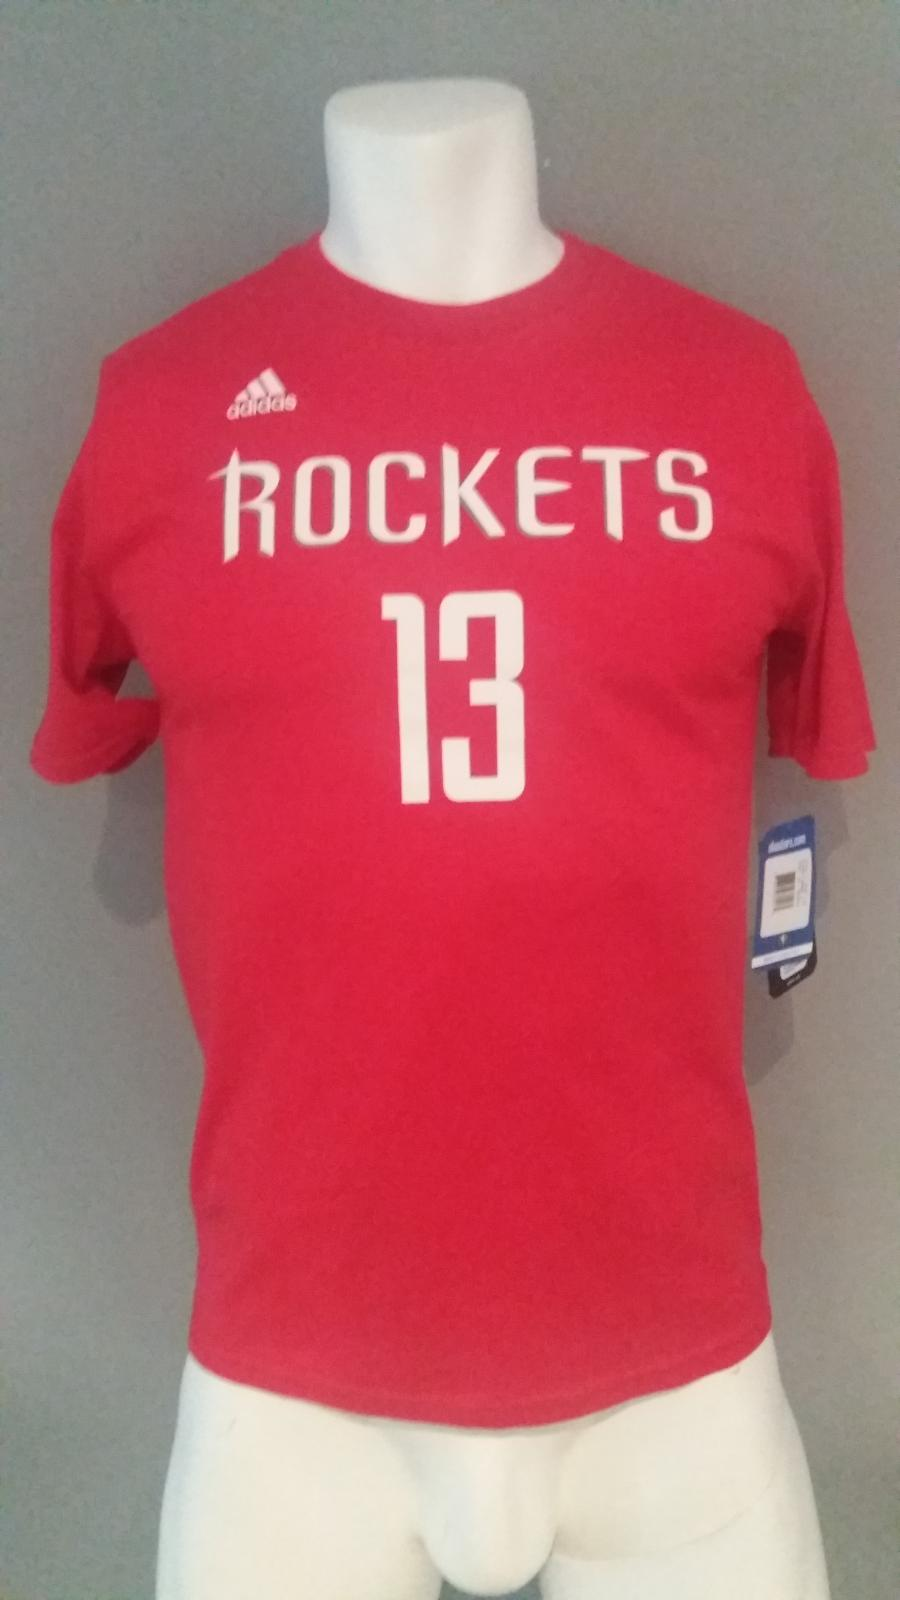 Jersey - T-shirt - Joven - James Harden - Houston Rockets - Alternate - Adidas